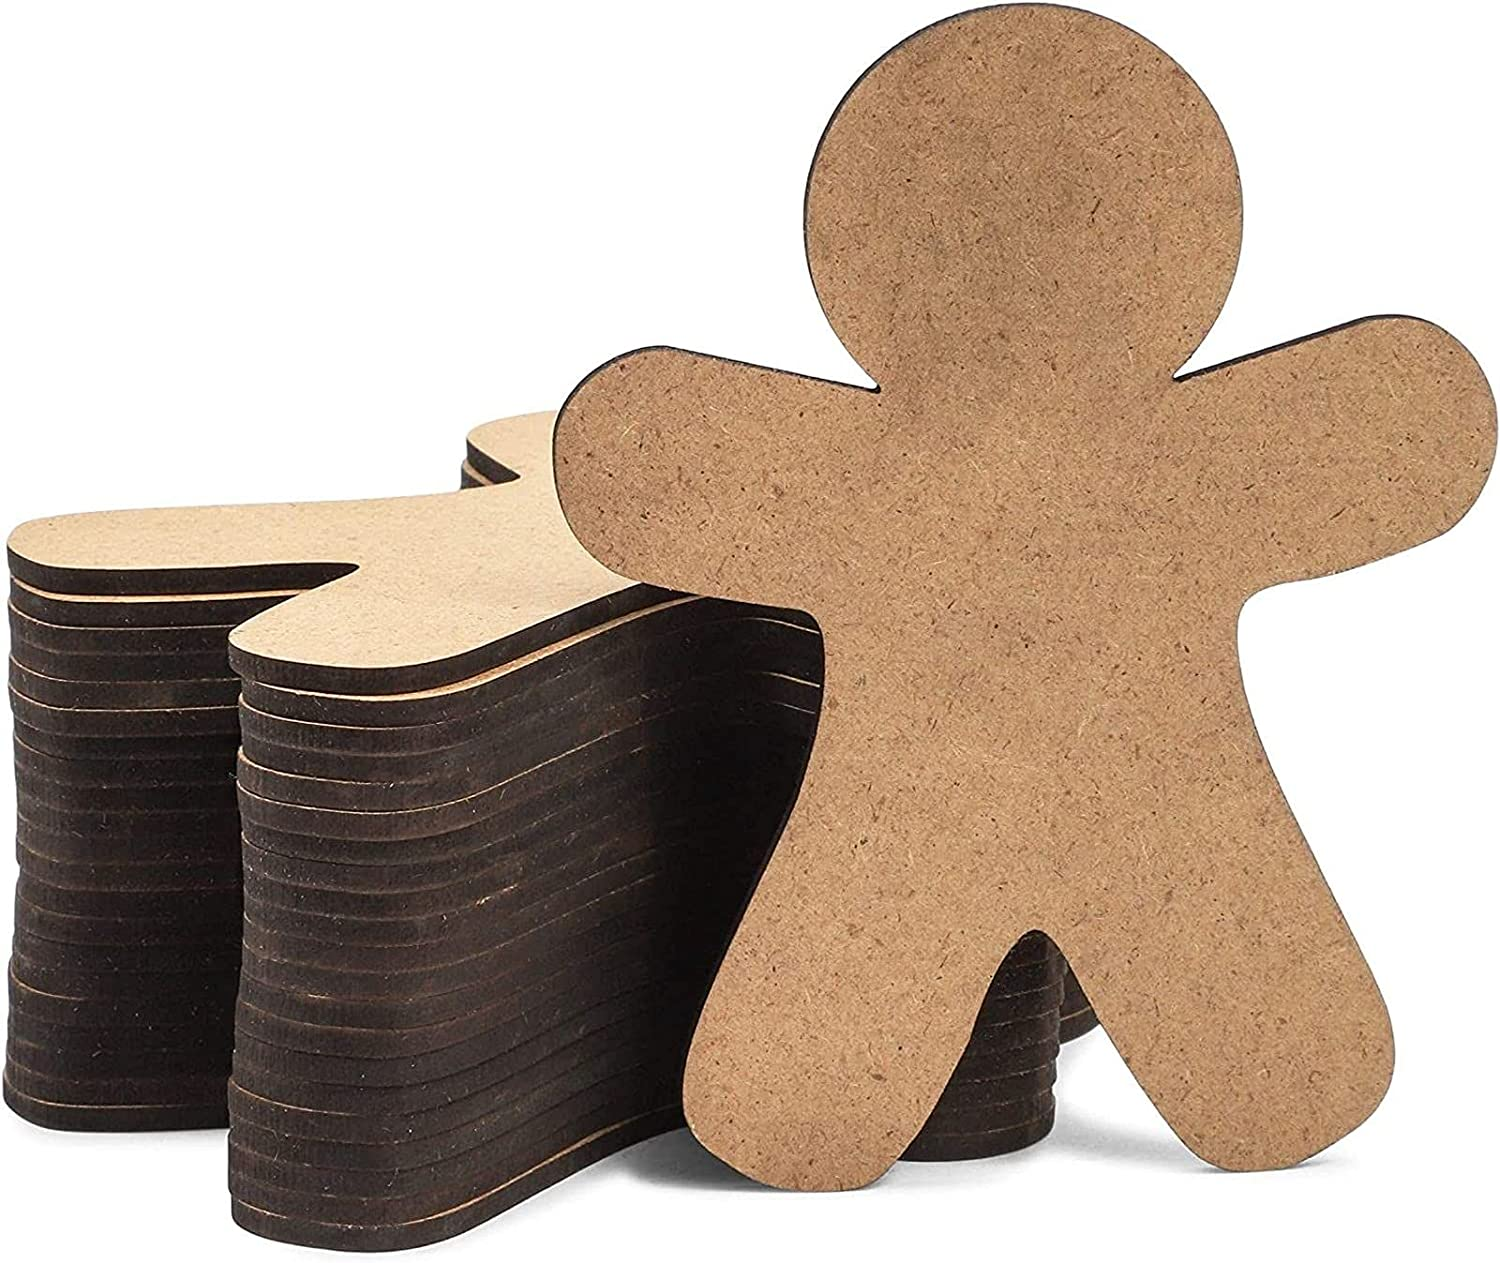 DIY Christmas Ornaments, Wooden Gingerbread Men for Crafts (3.5 x 4.5 in, 24 Pack)